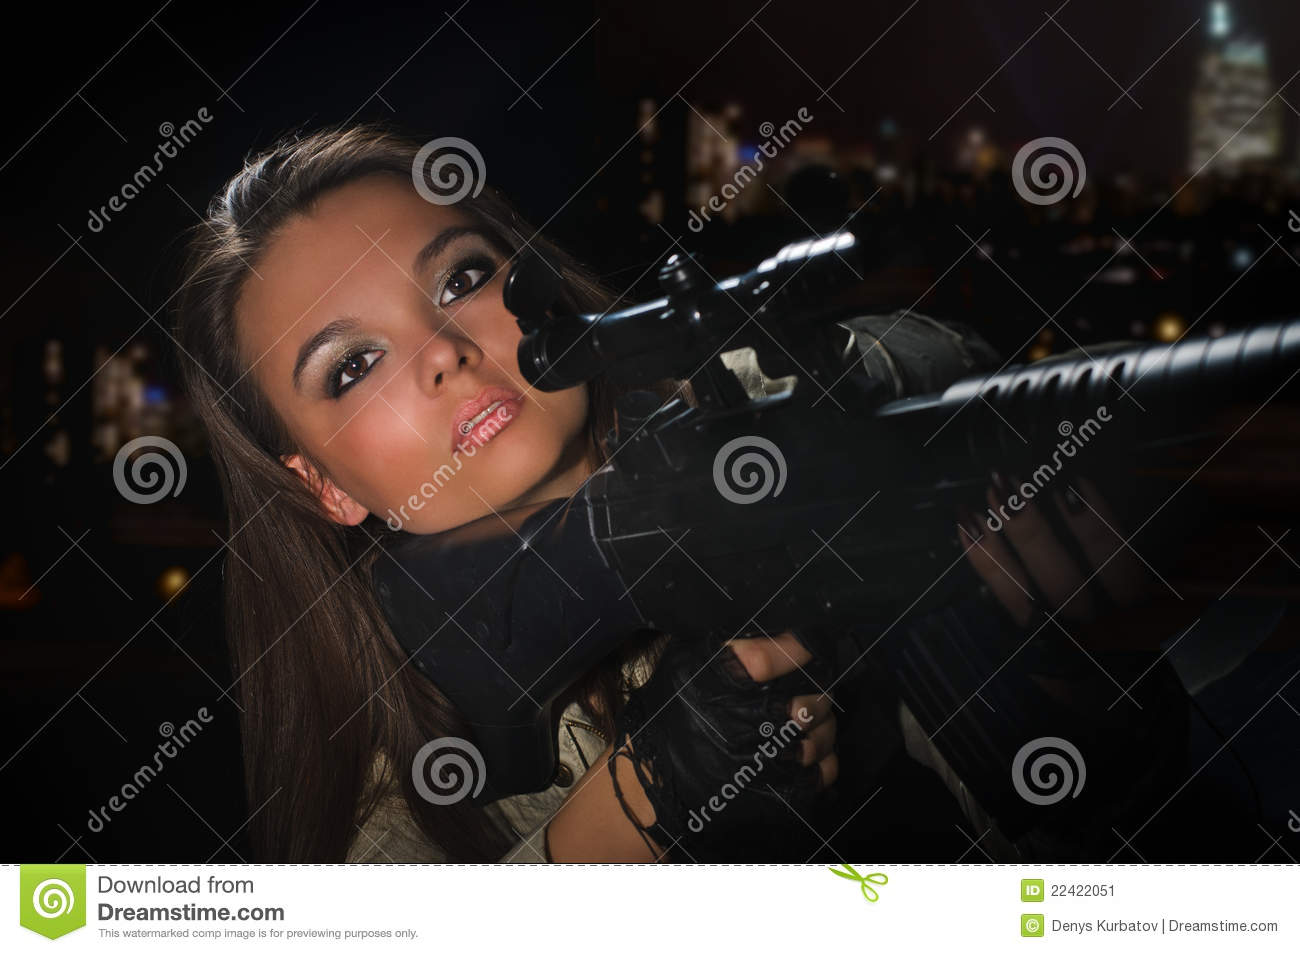 Girl Night Lights Army Girl In Night Lights Stock Image Image Of Commando 22422051